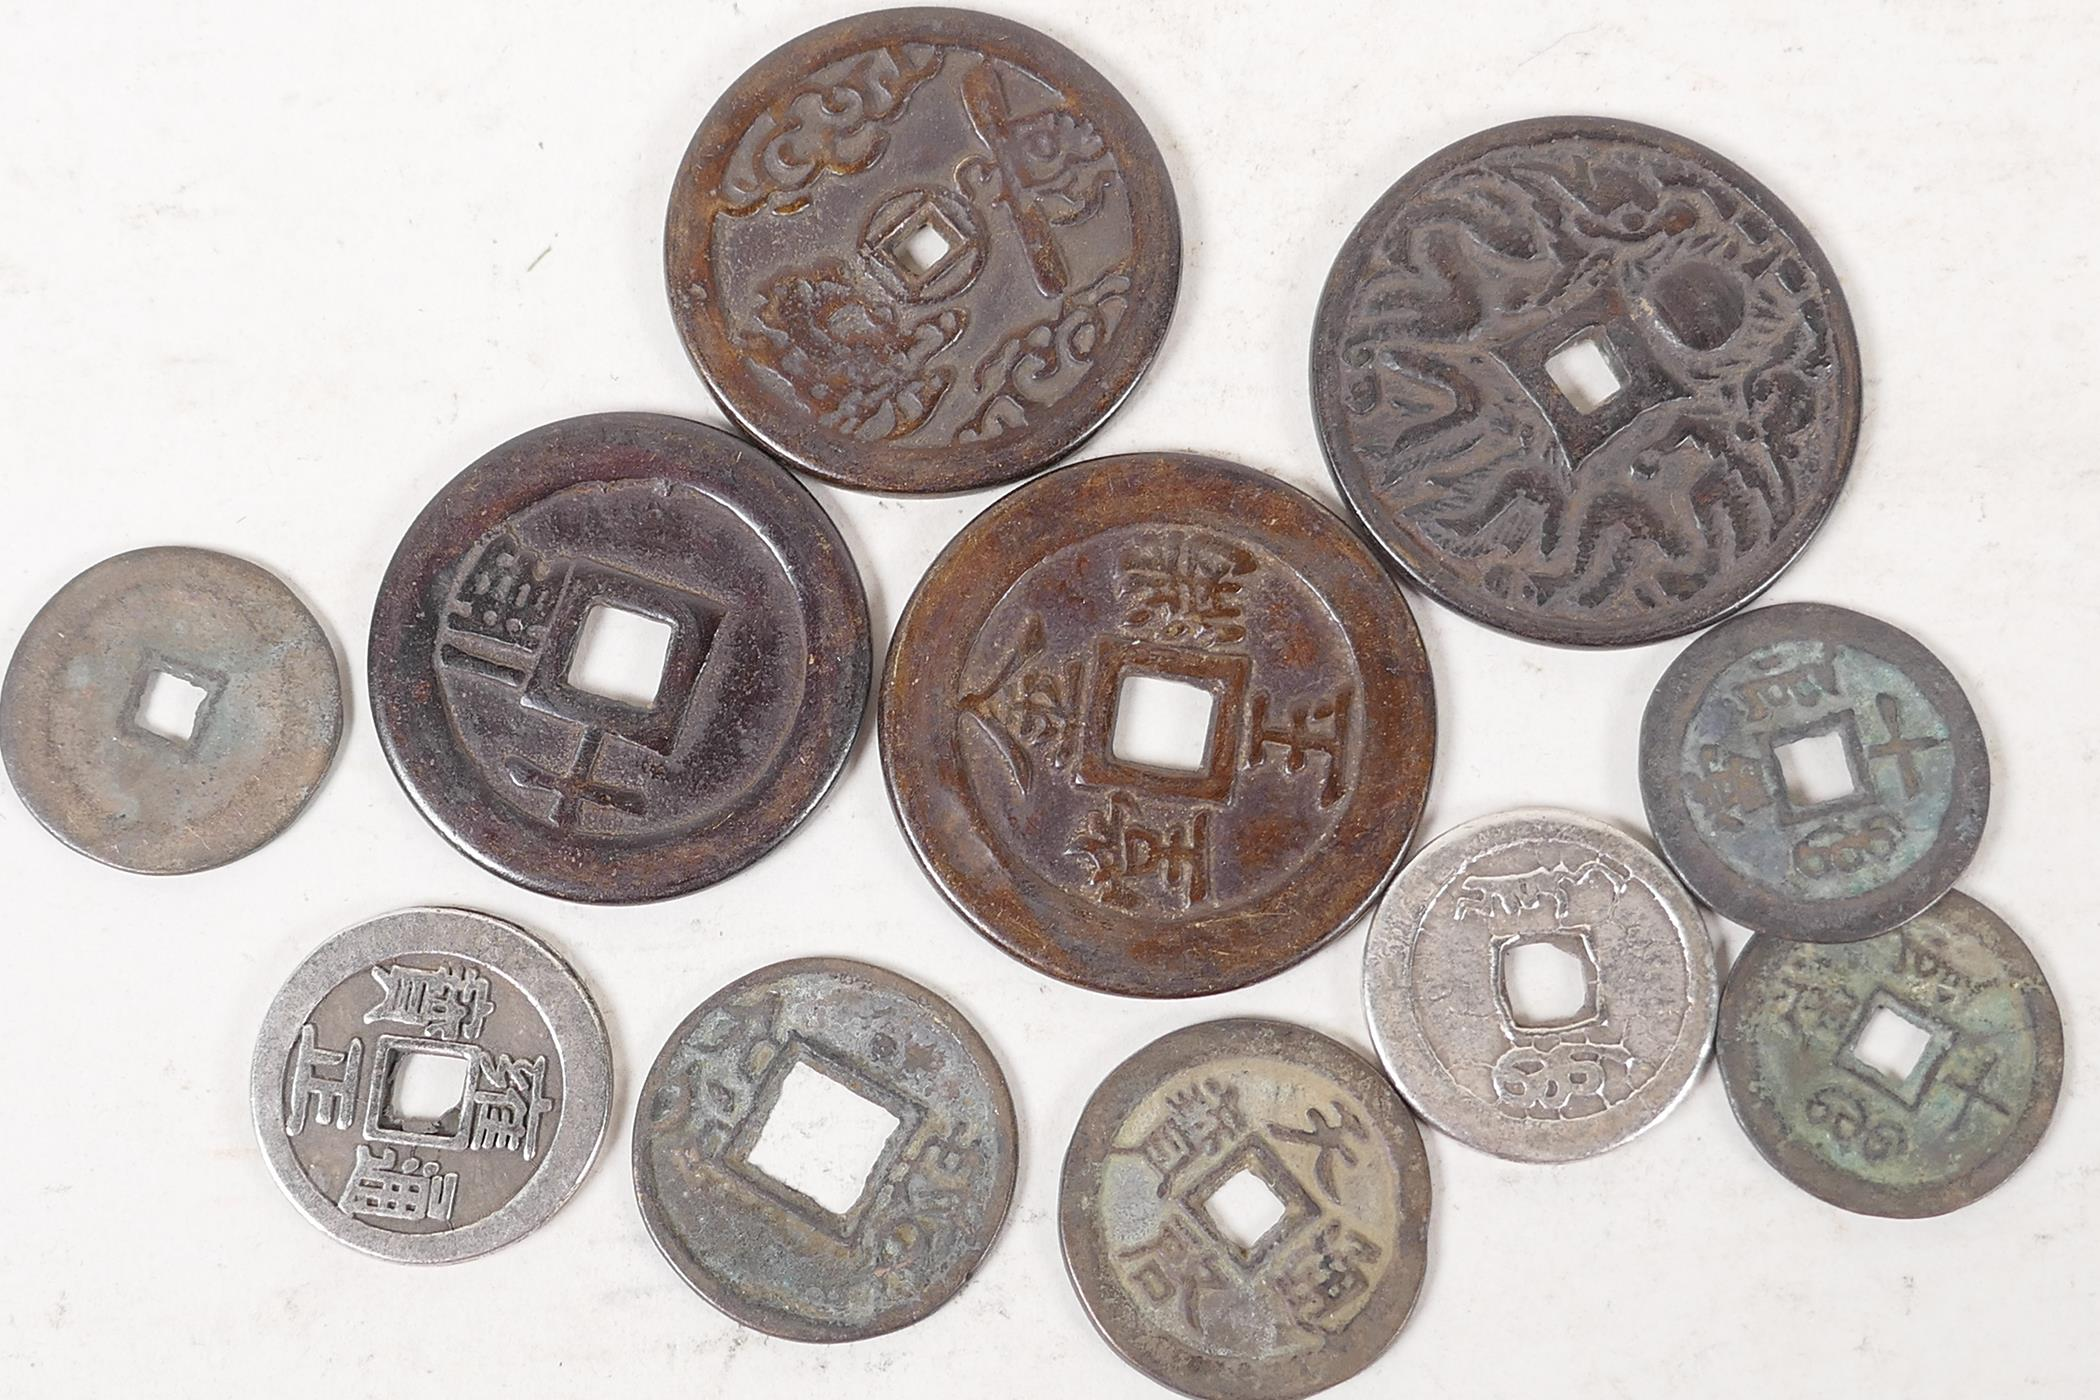 A collection of various Chinese coins